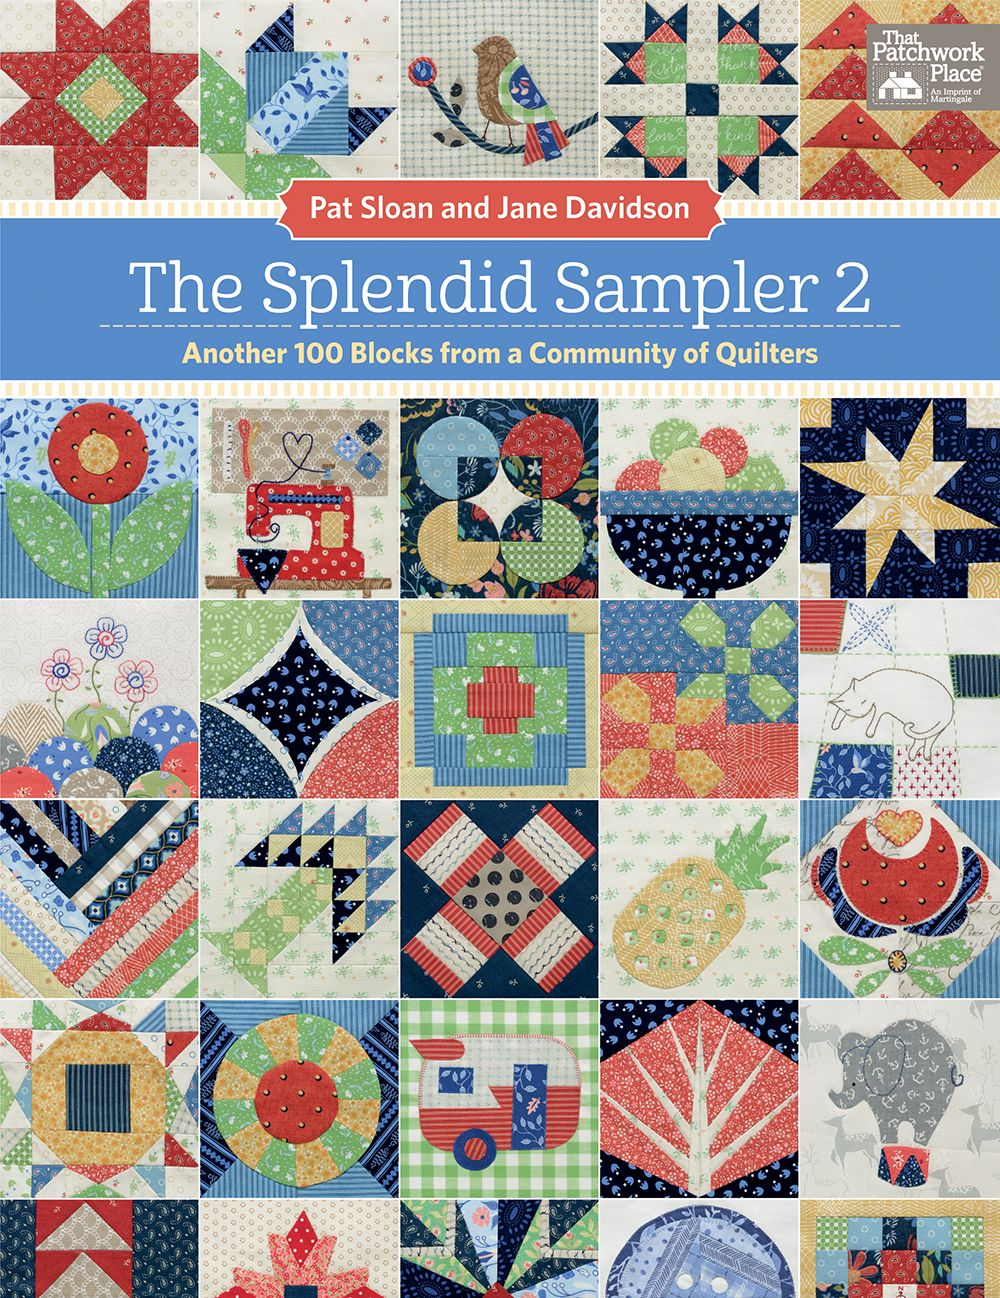 More than 28,000 quilters have joined the Splendid Sampler